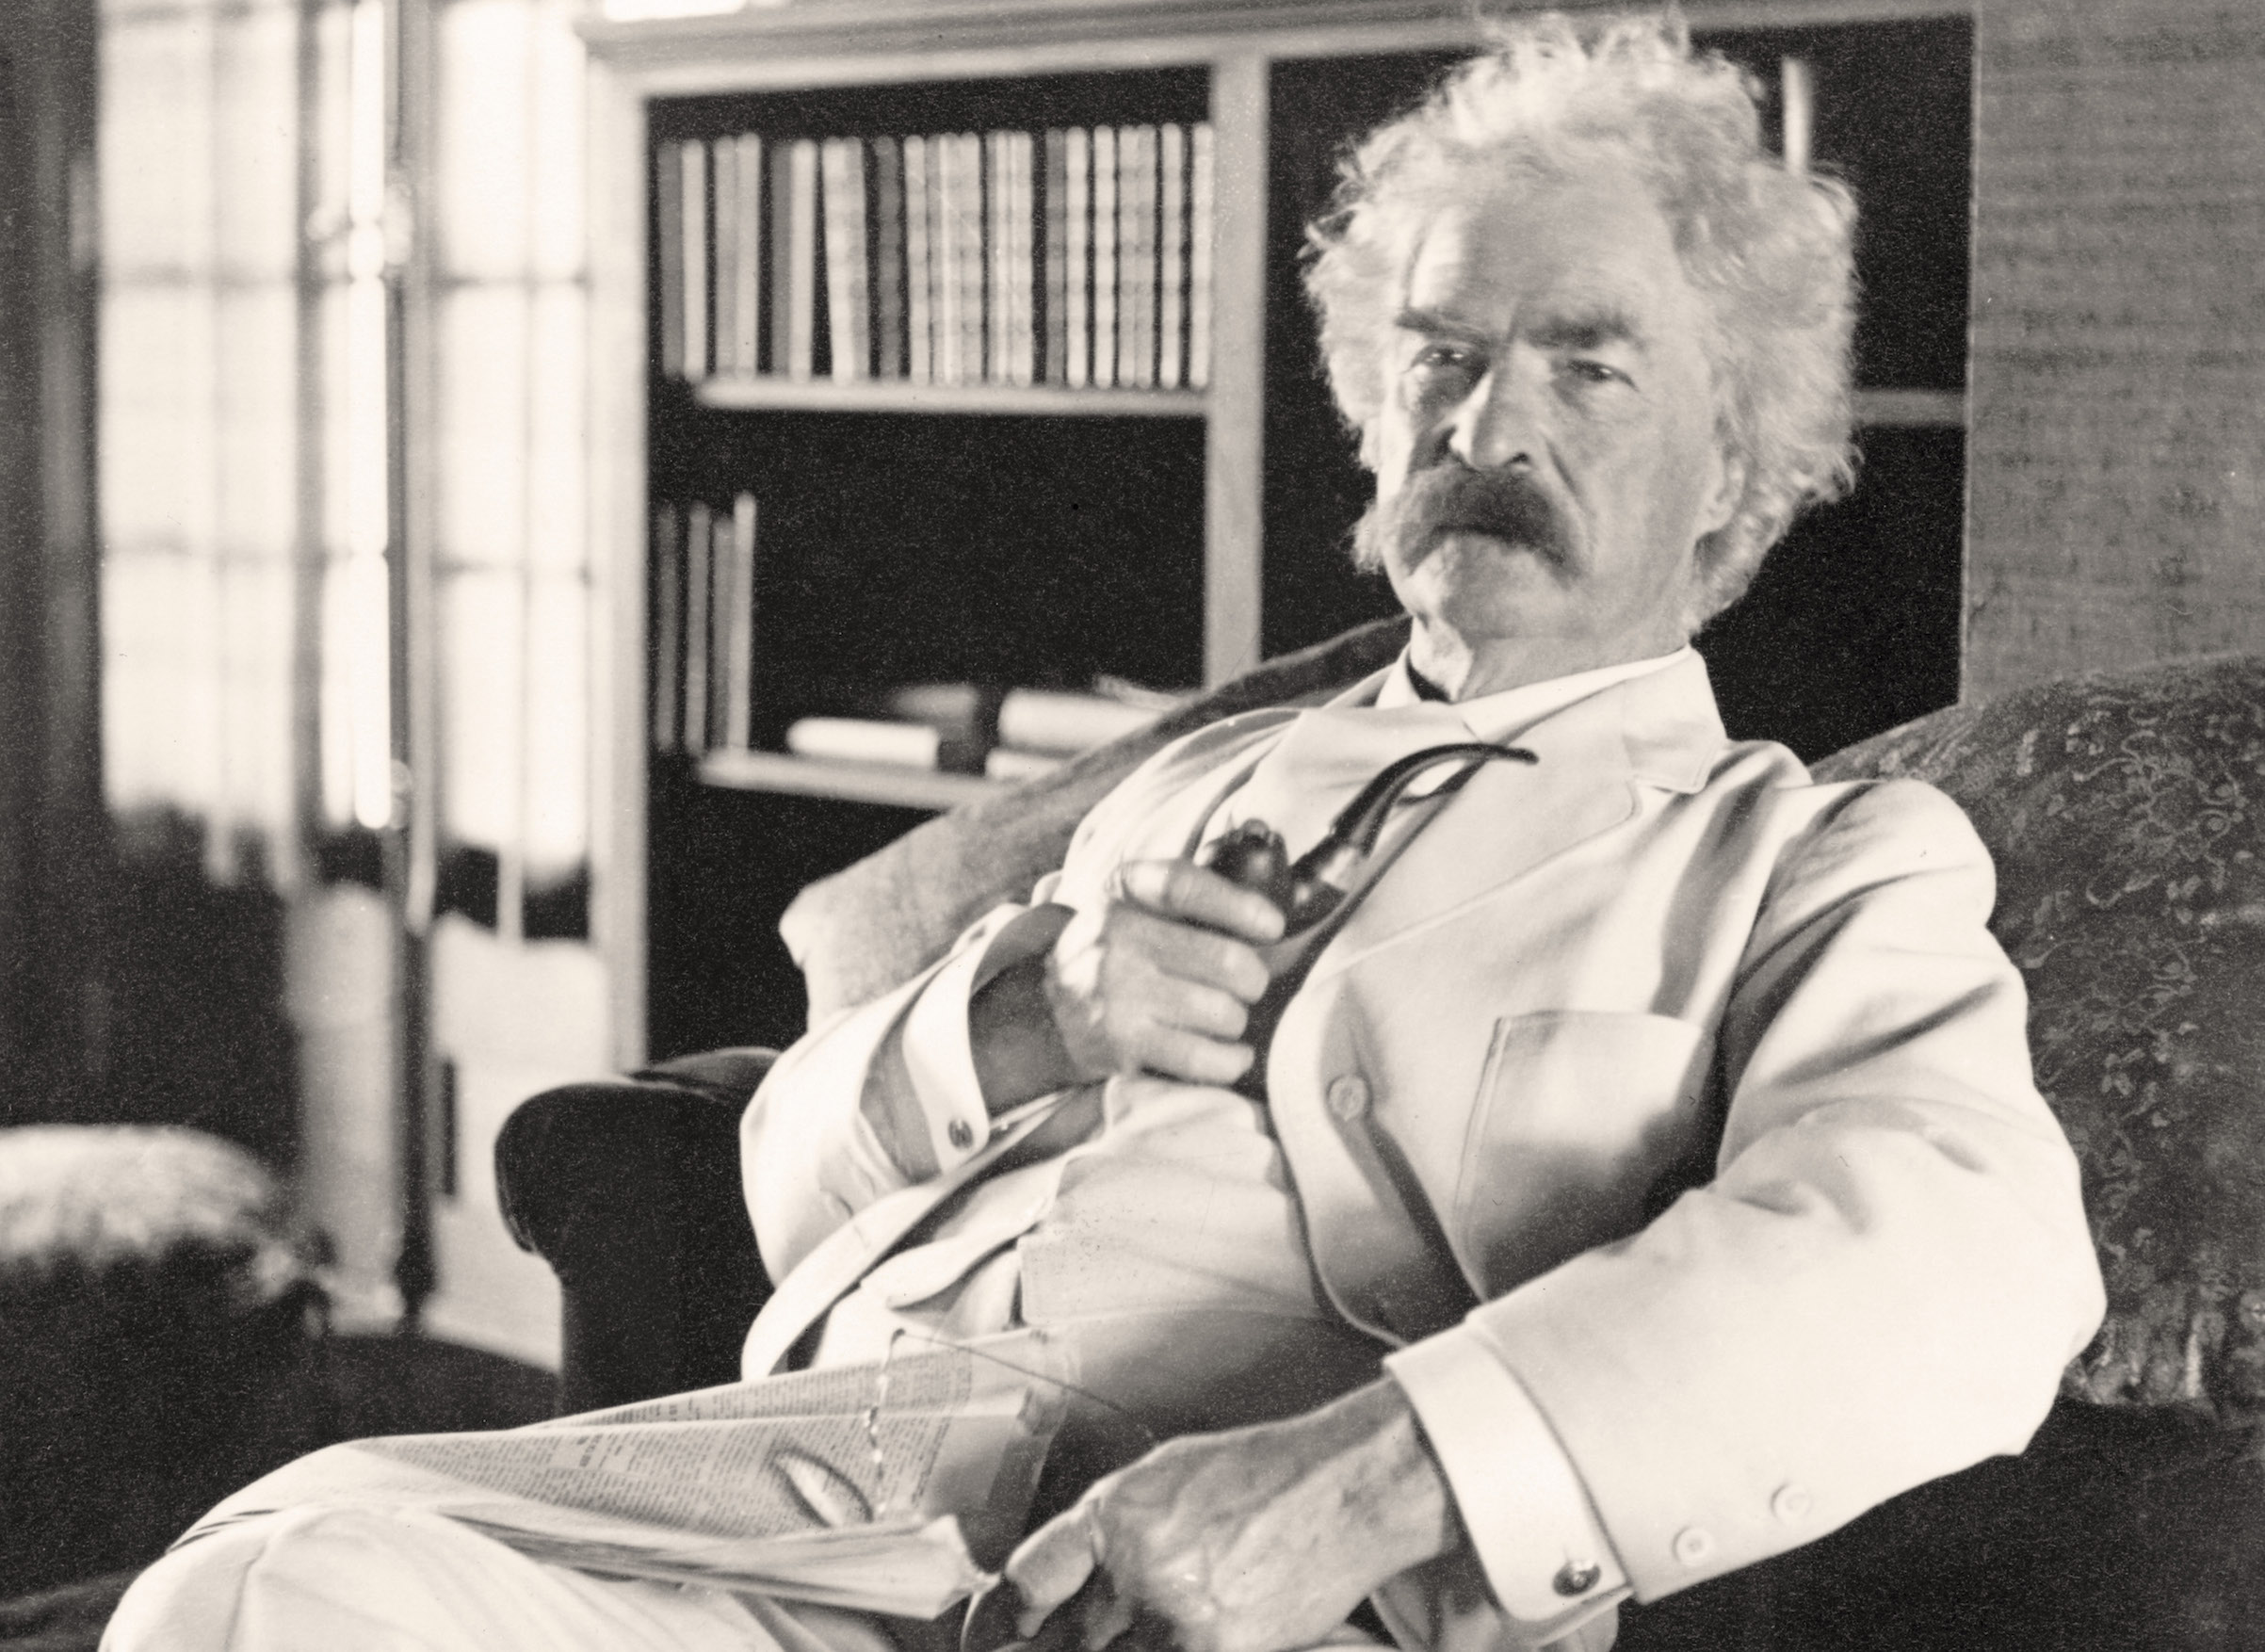 Samuel Langhorne Clemens (1835 to 1910), known by pen name Mark Twain. Photograph taken in his old age.